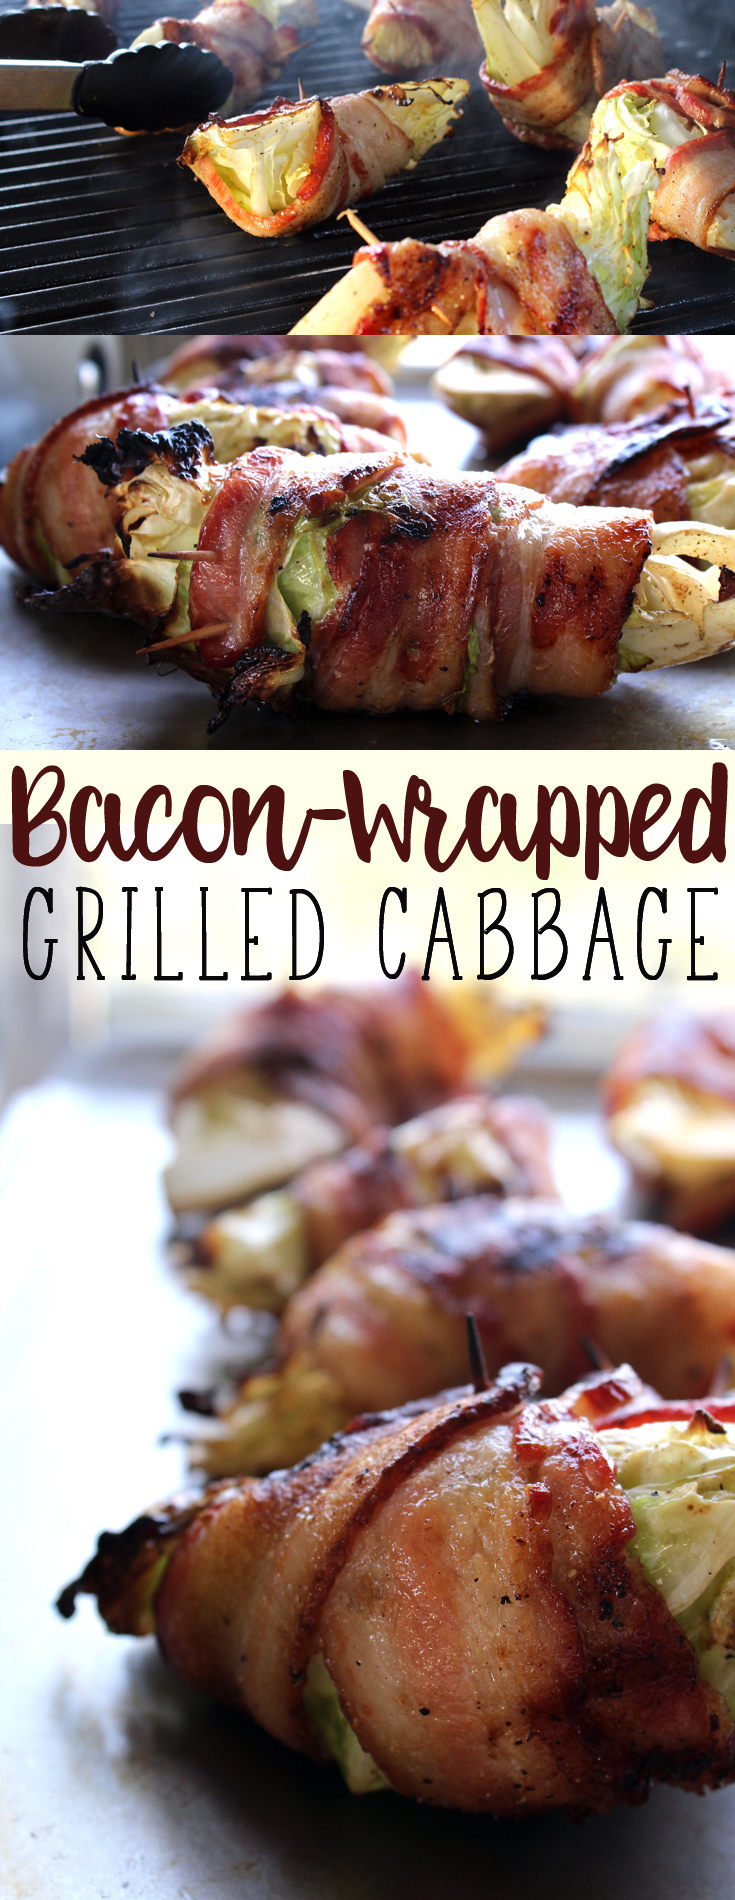 Bacon Wrapped Grilled Cabbage is one of my personal favorite (and easy) all time grilling recipes. The flavor is amazing. #grilledcabbage